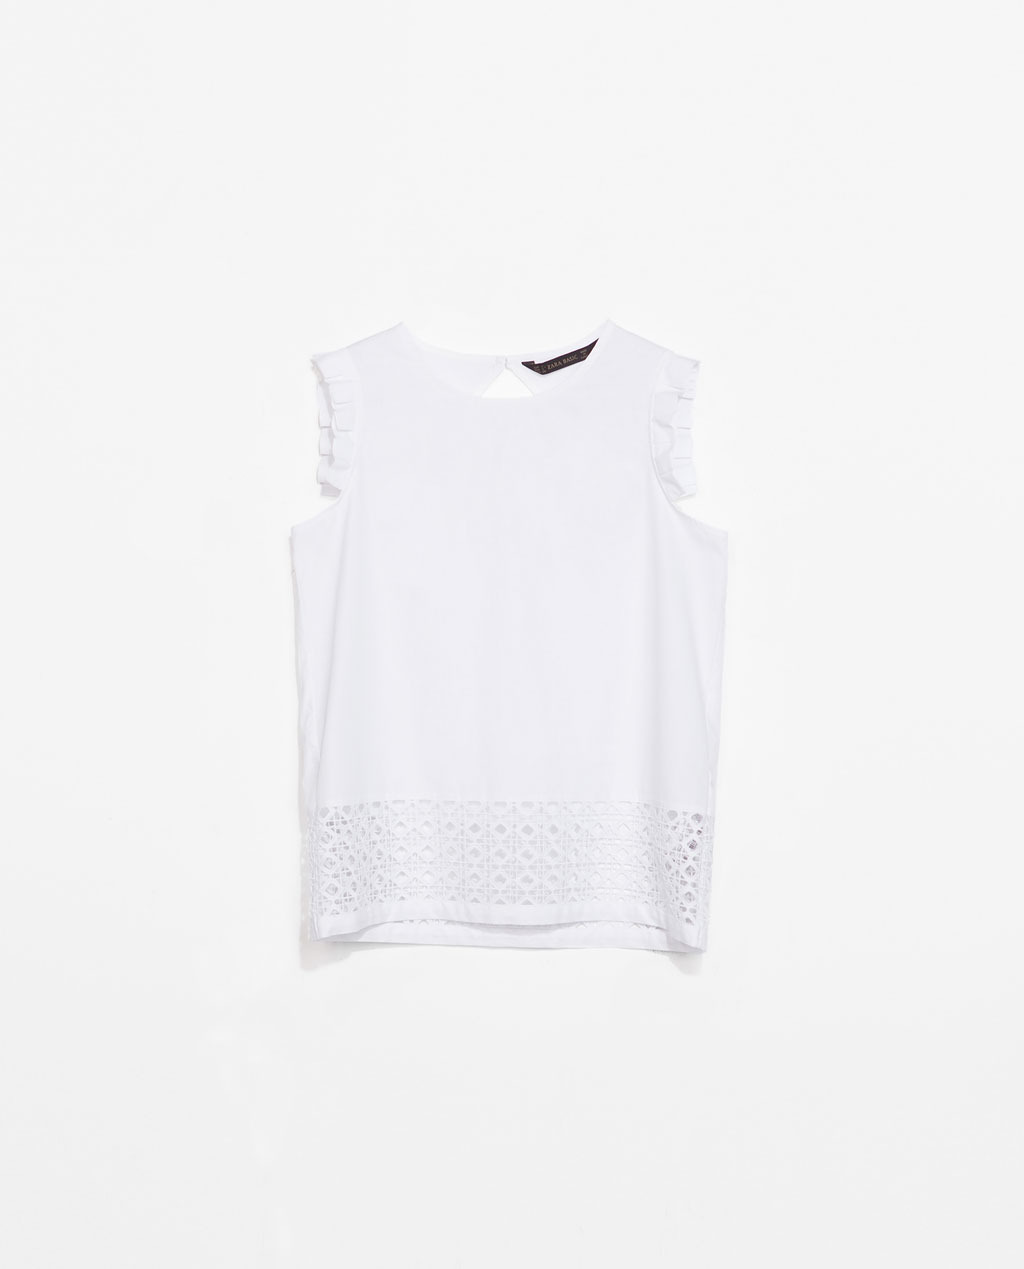 Combination Top - pattern: plain; sleeve style: sleeveless; predominant colour: white; occasions: casual, work, creative work; length: standard; style: top; fibres: cotton - 100%; fit: straight cut; neckline: crew; sleeve length: sleeveless; texture group: cotton feel fabrics; season: s/s 2014